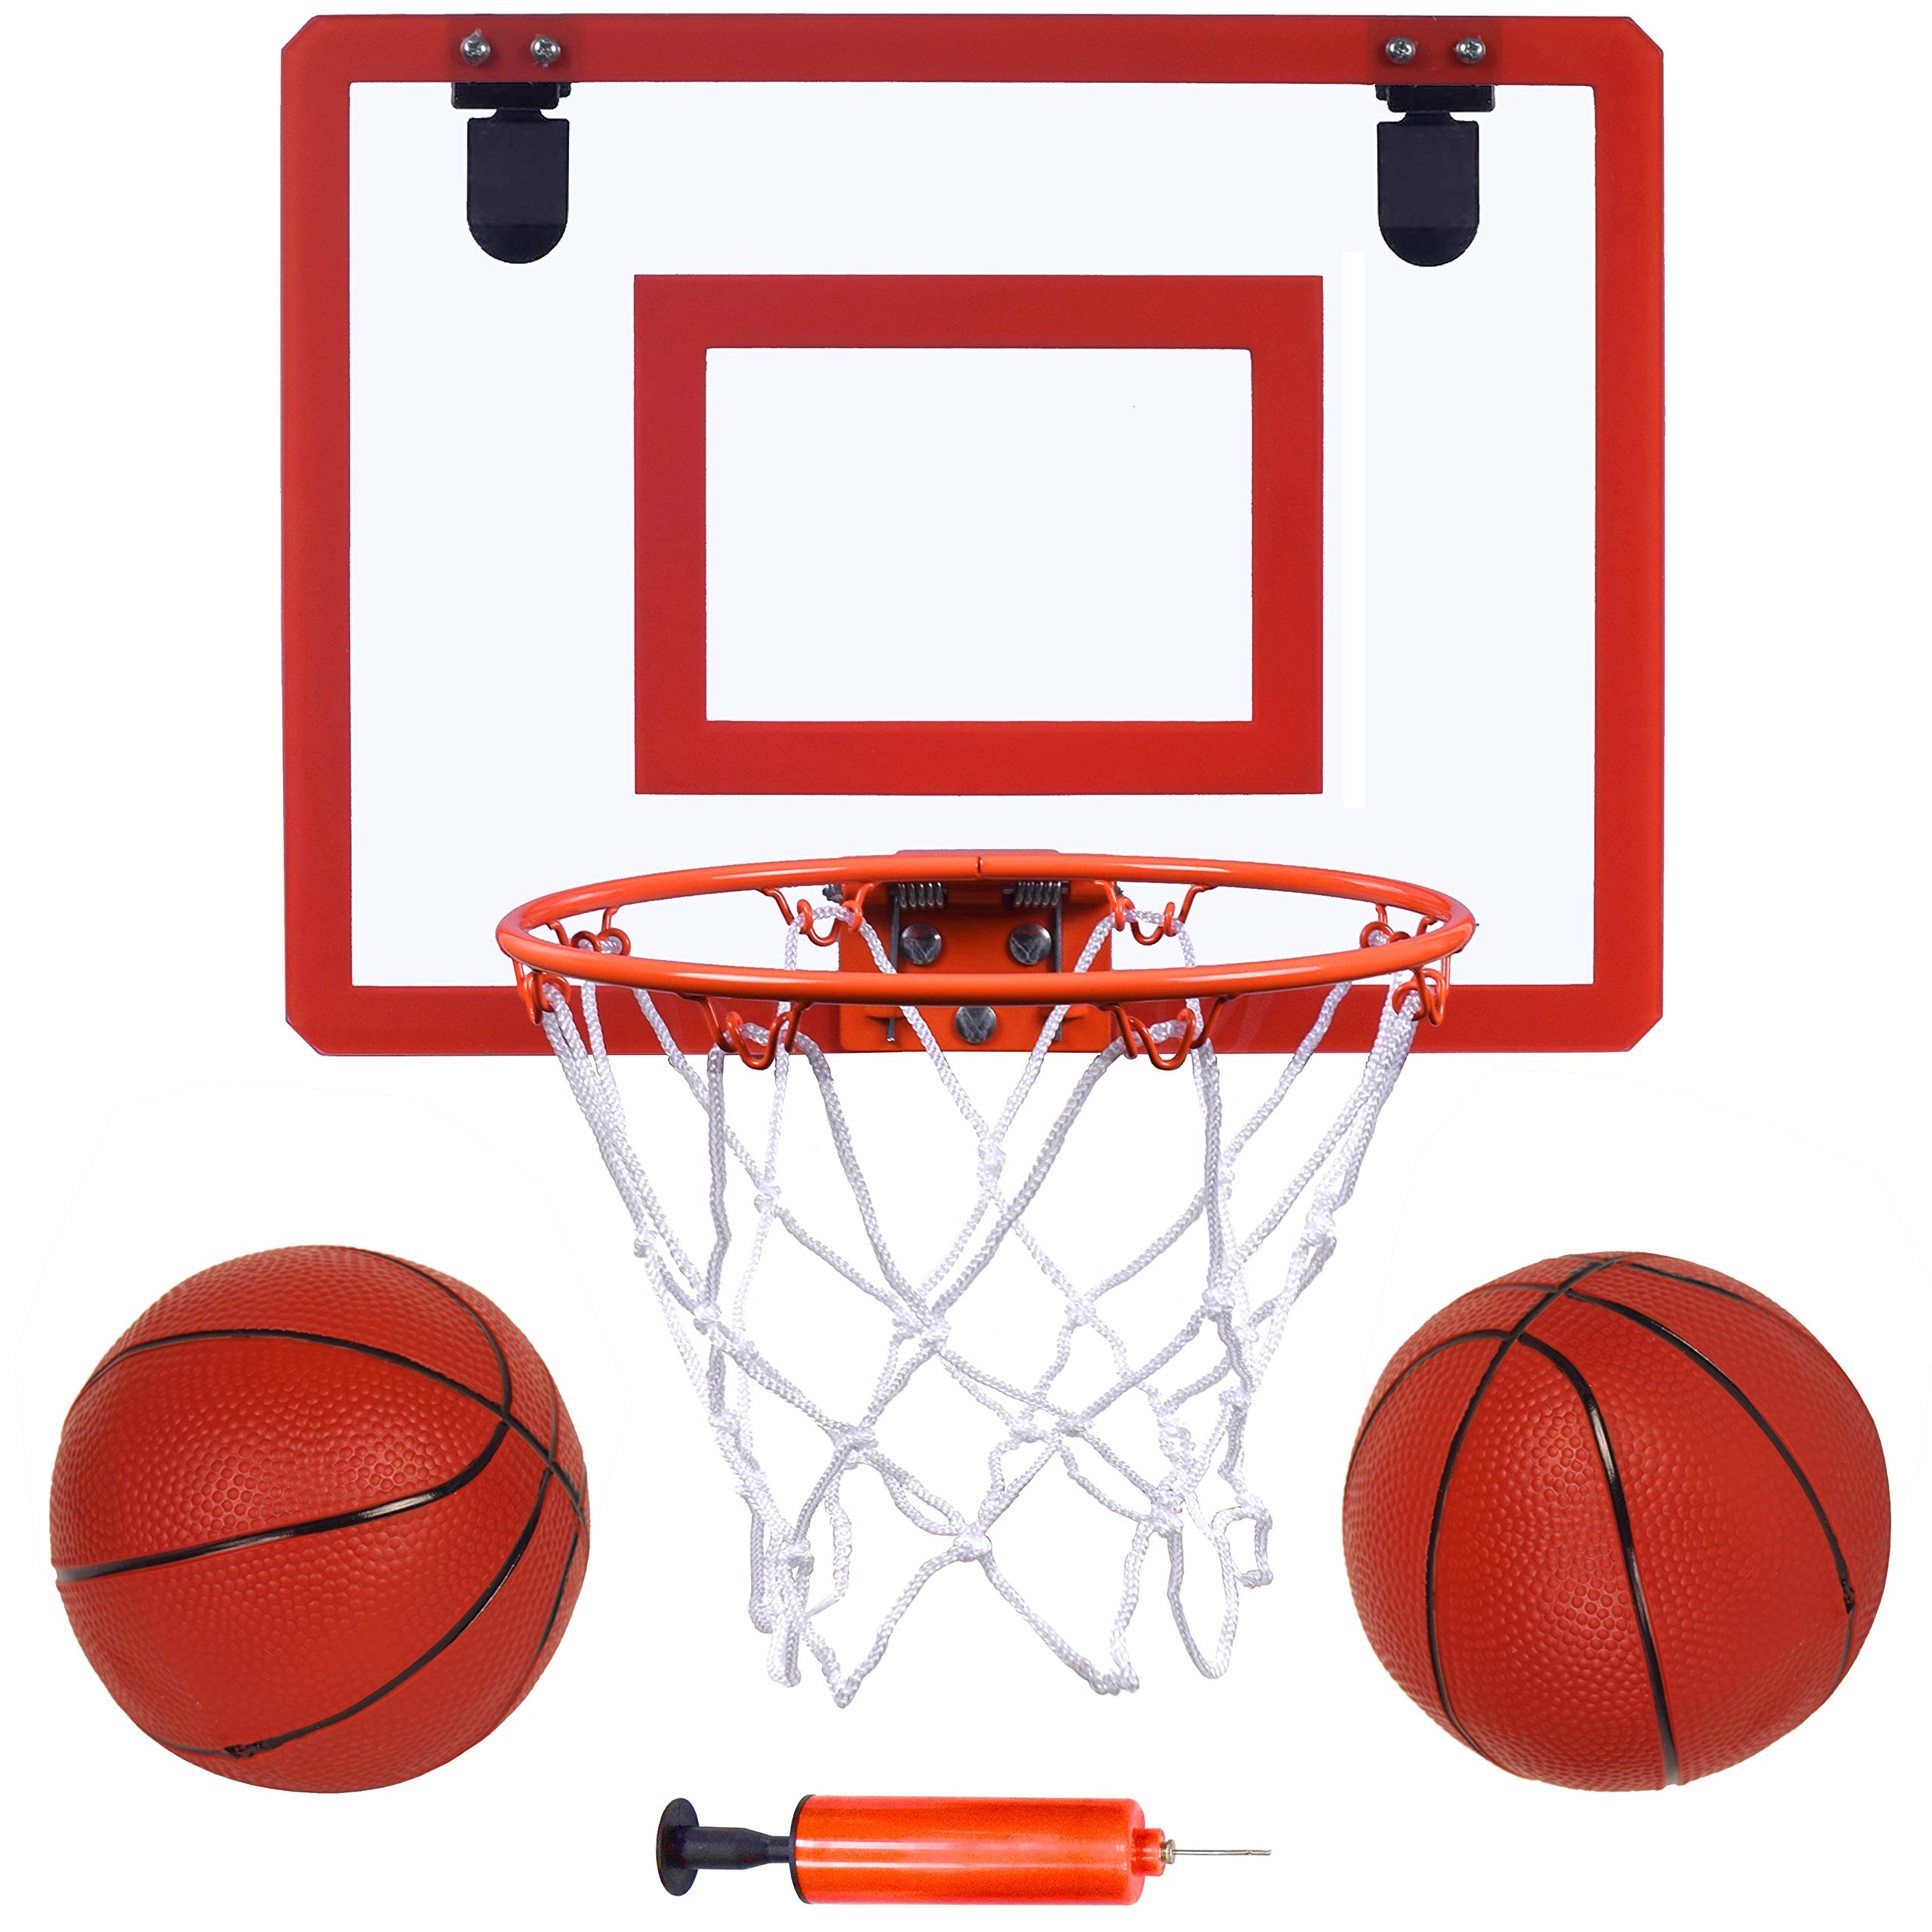 """Indoor Mini Basketball Hoop and Balls 16 """"x12"""" Board Hoop Game Set for Door and Wall Mount with Complete Accessories Basketball Toy Gifts for Kids and Adults"""